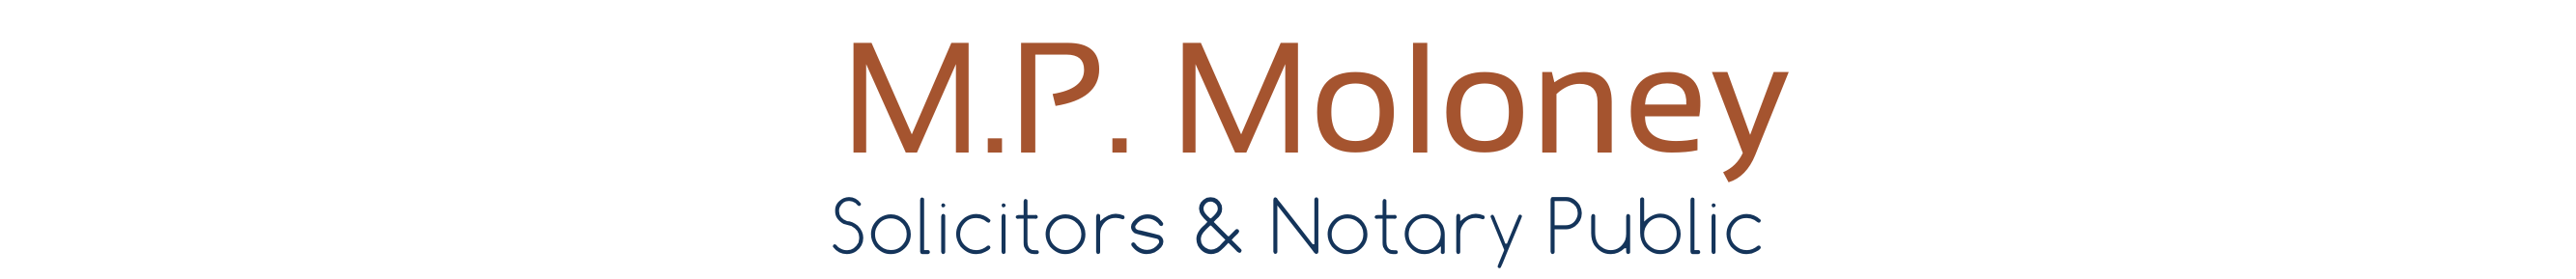 M.P Moloney Solicitors & Notary Public